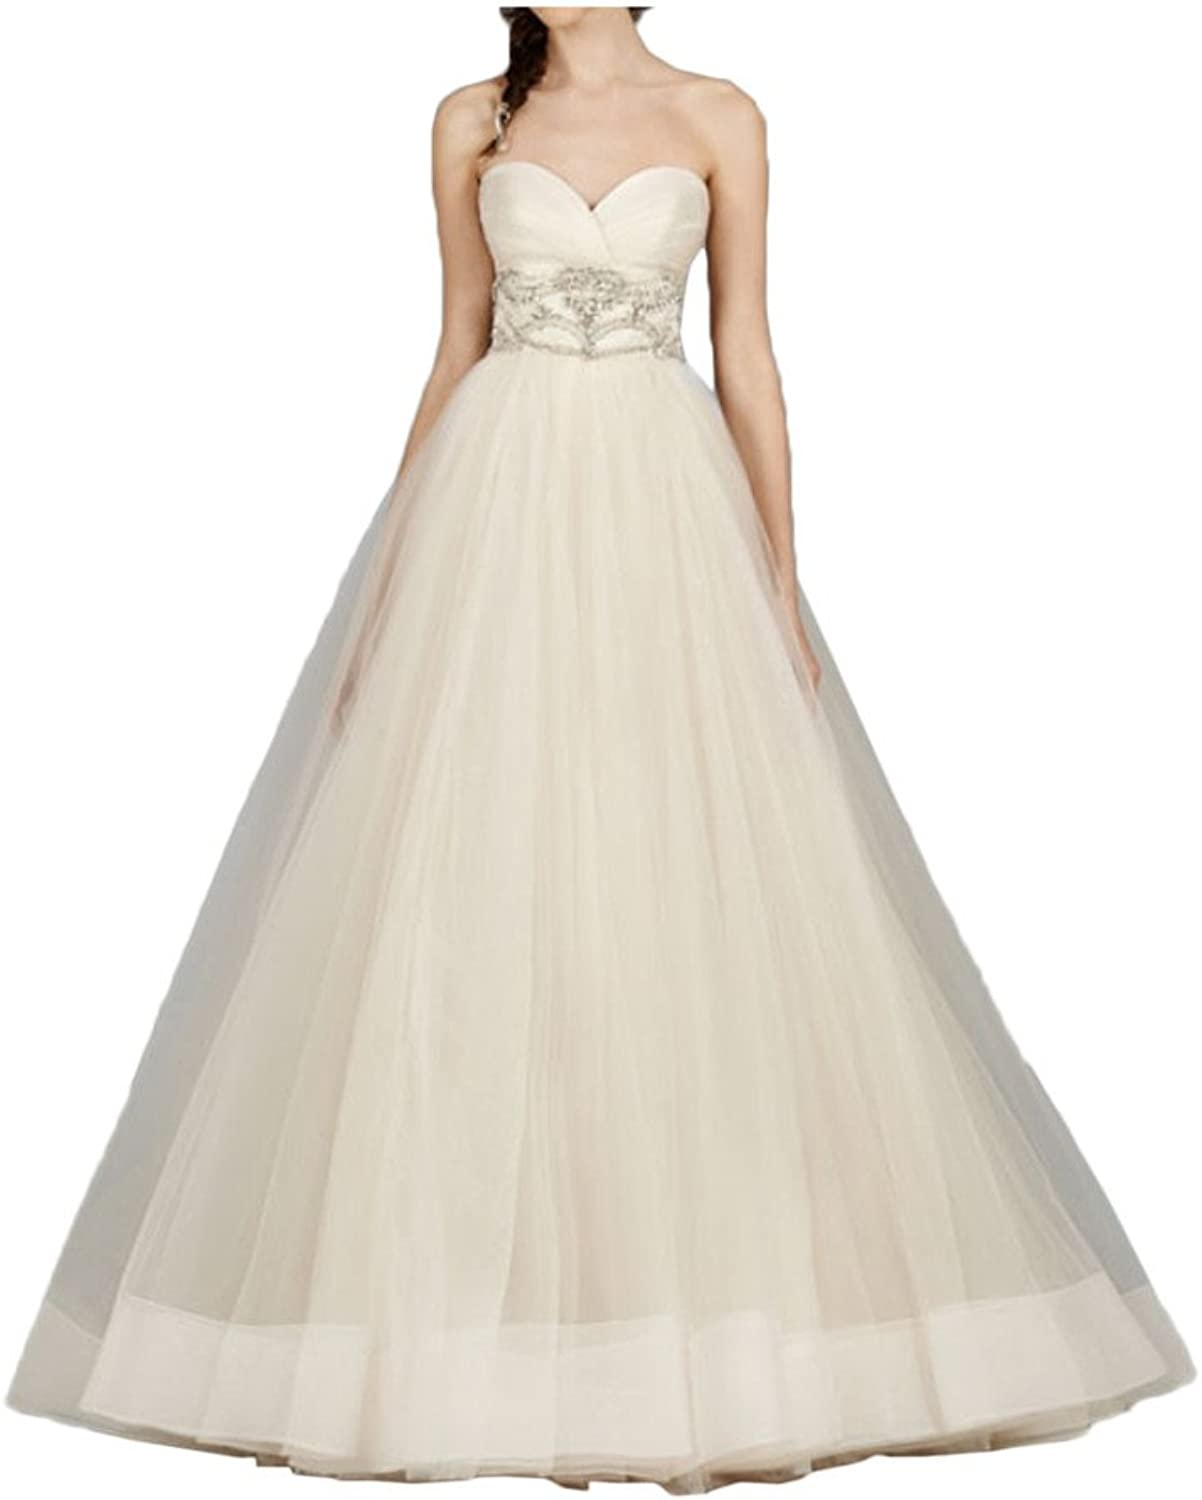 Avril Dress Glamgoldus Strapless Backless Wedding Dress Tulle Train Bridal Gown